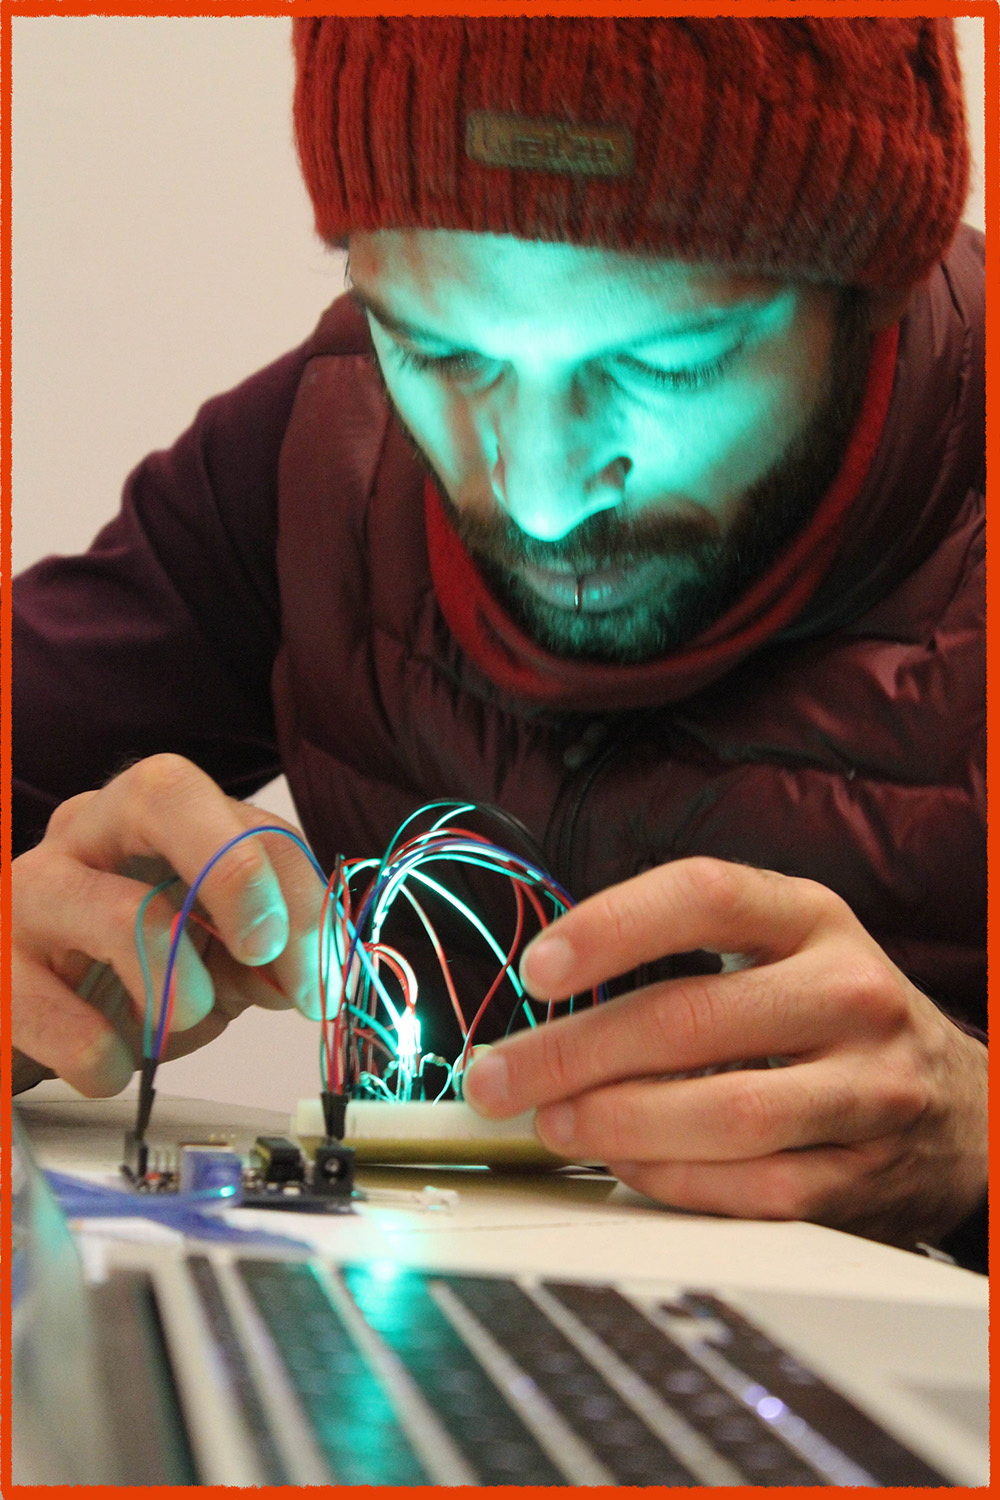 Arduino: A Maker Approach to Art & Interactivity Workshop